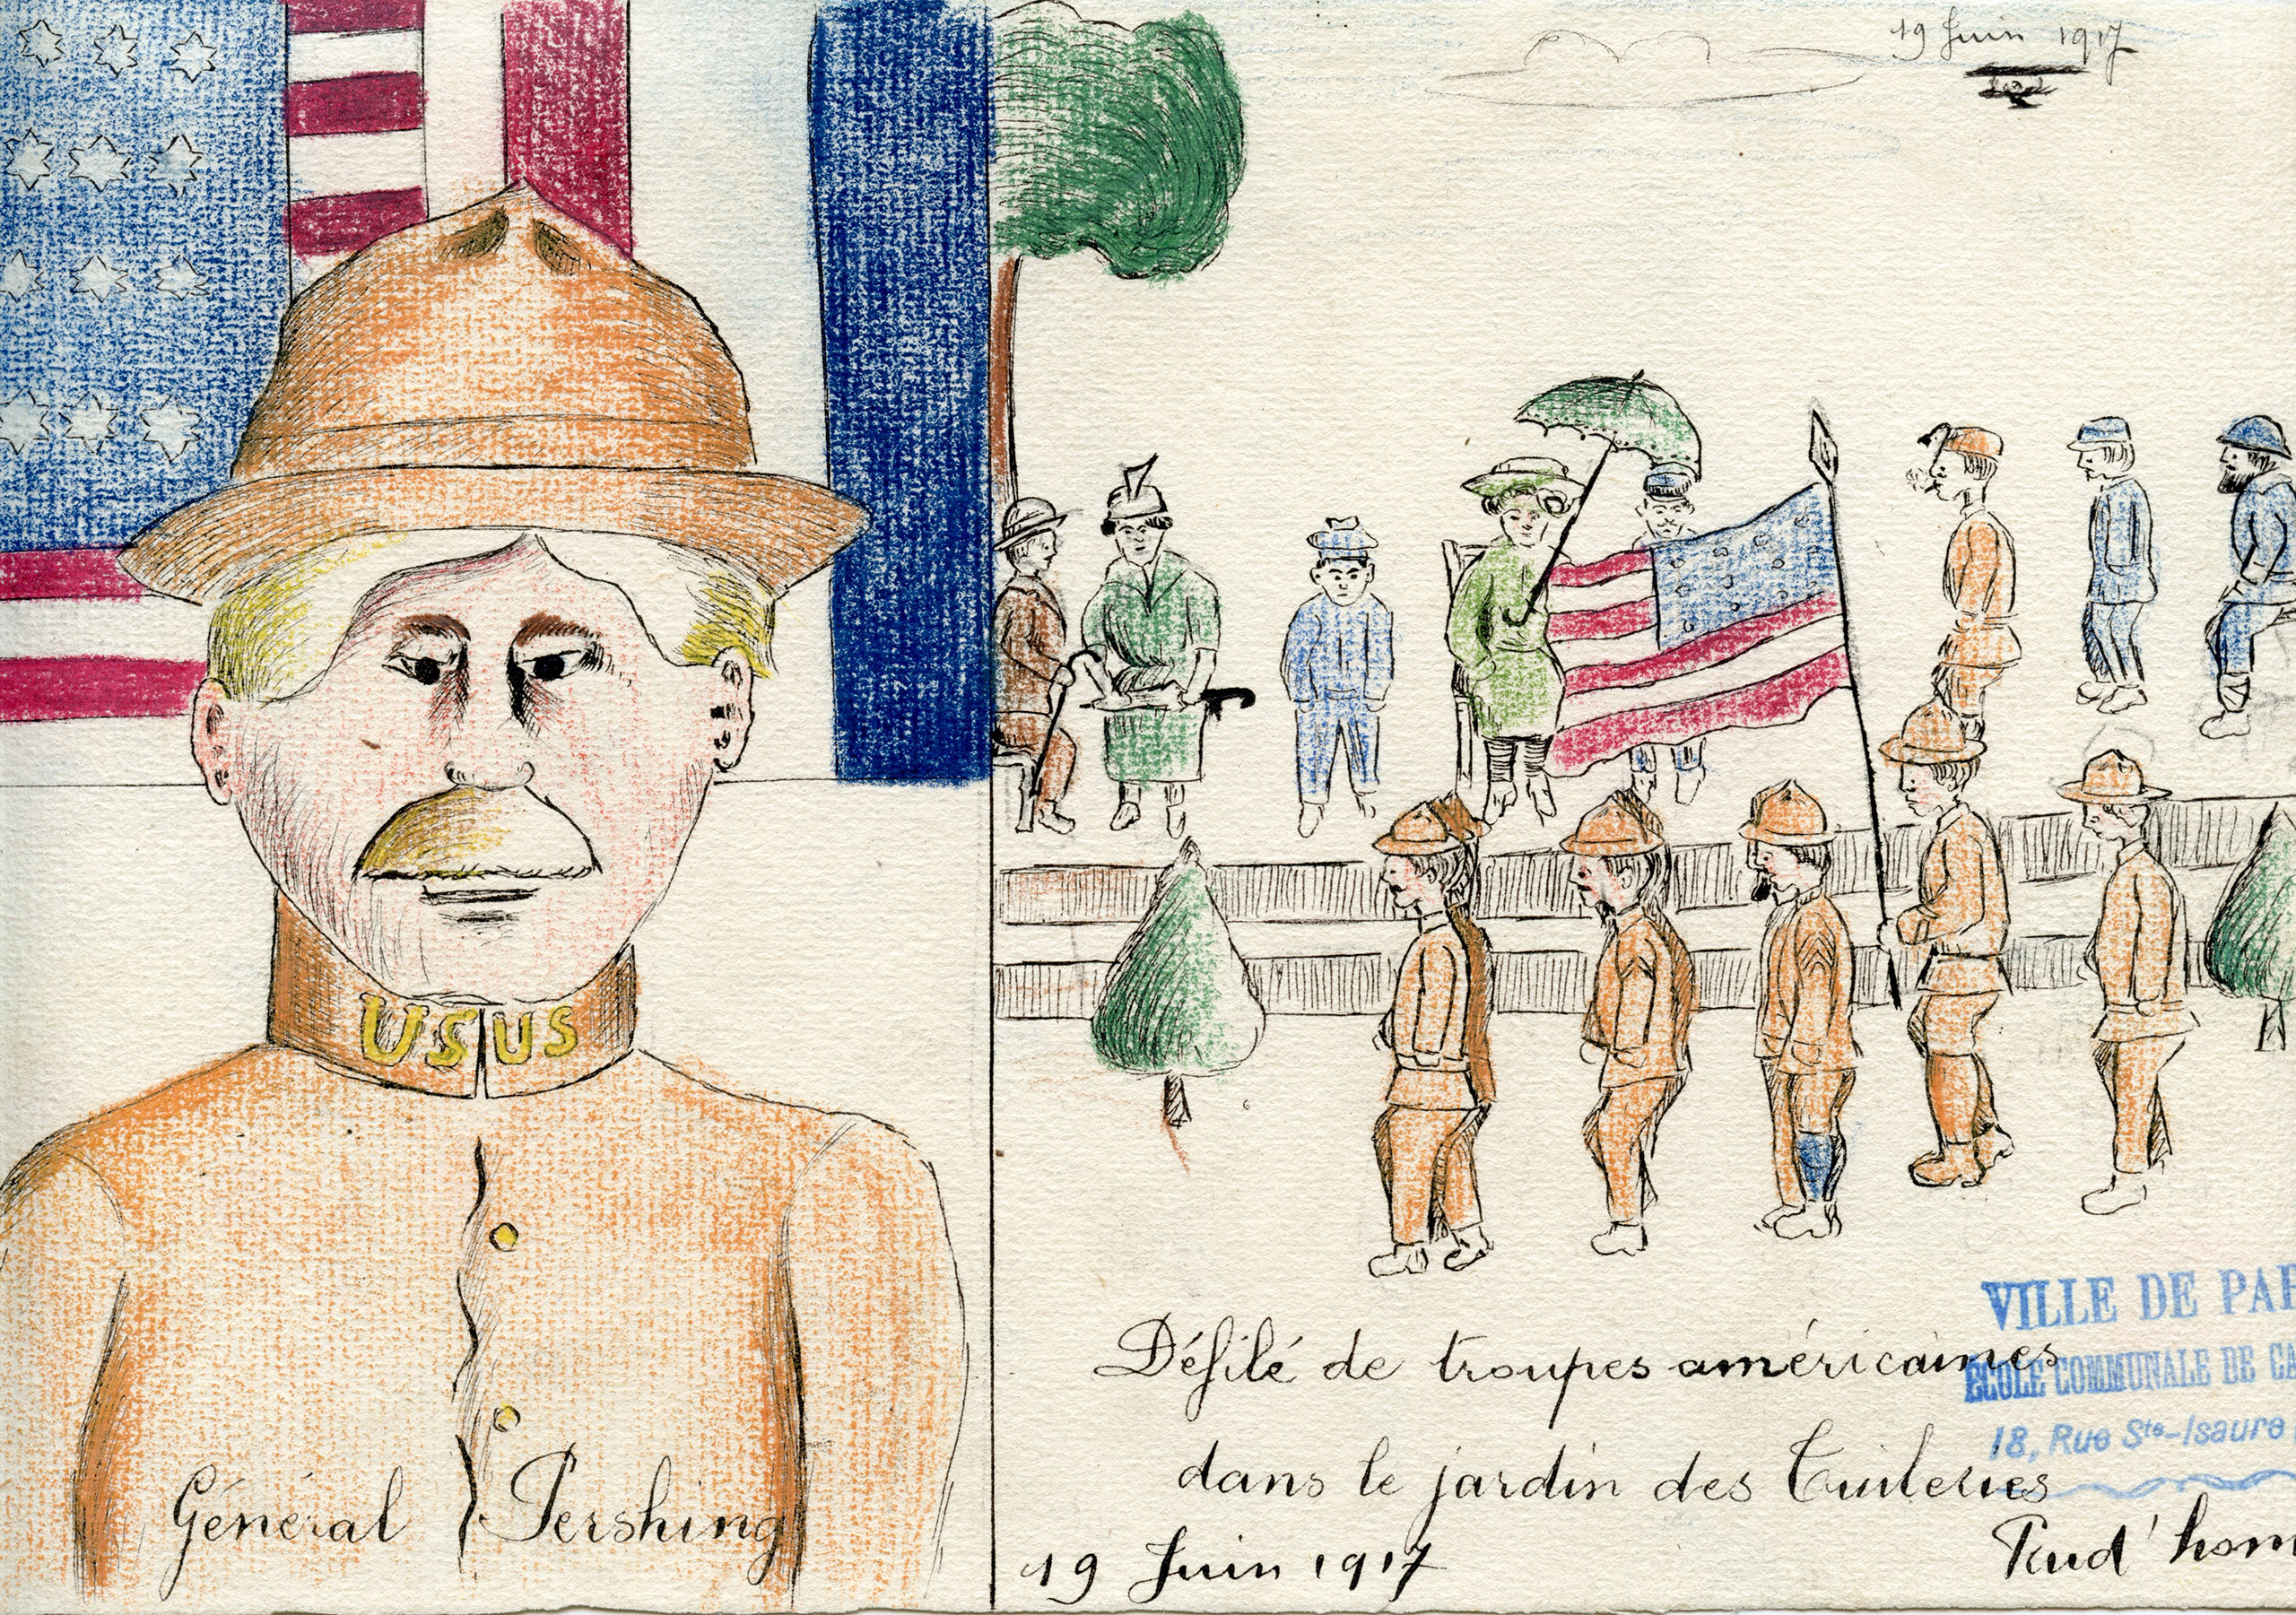 In this drawing, the school child depicts two images. On the right side, American soldiers parade in the Tuileries Park in Paris, while on the left, a bust of General Pershing appears before a careful rendering of the American and French flags, a reference to the two nations' relationship.